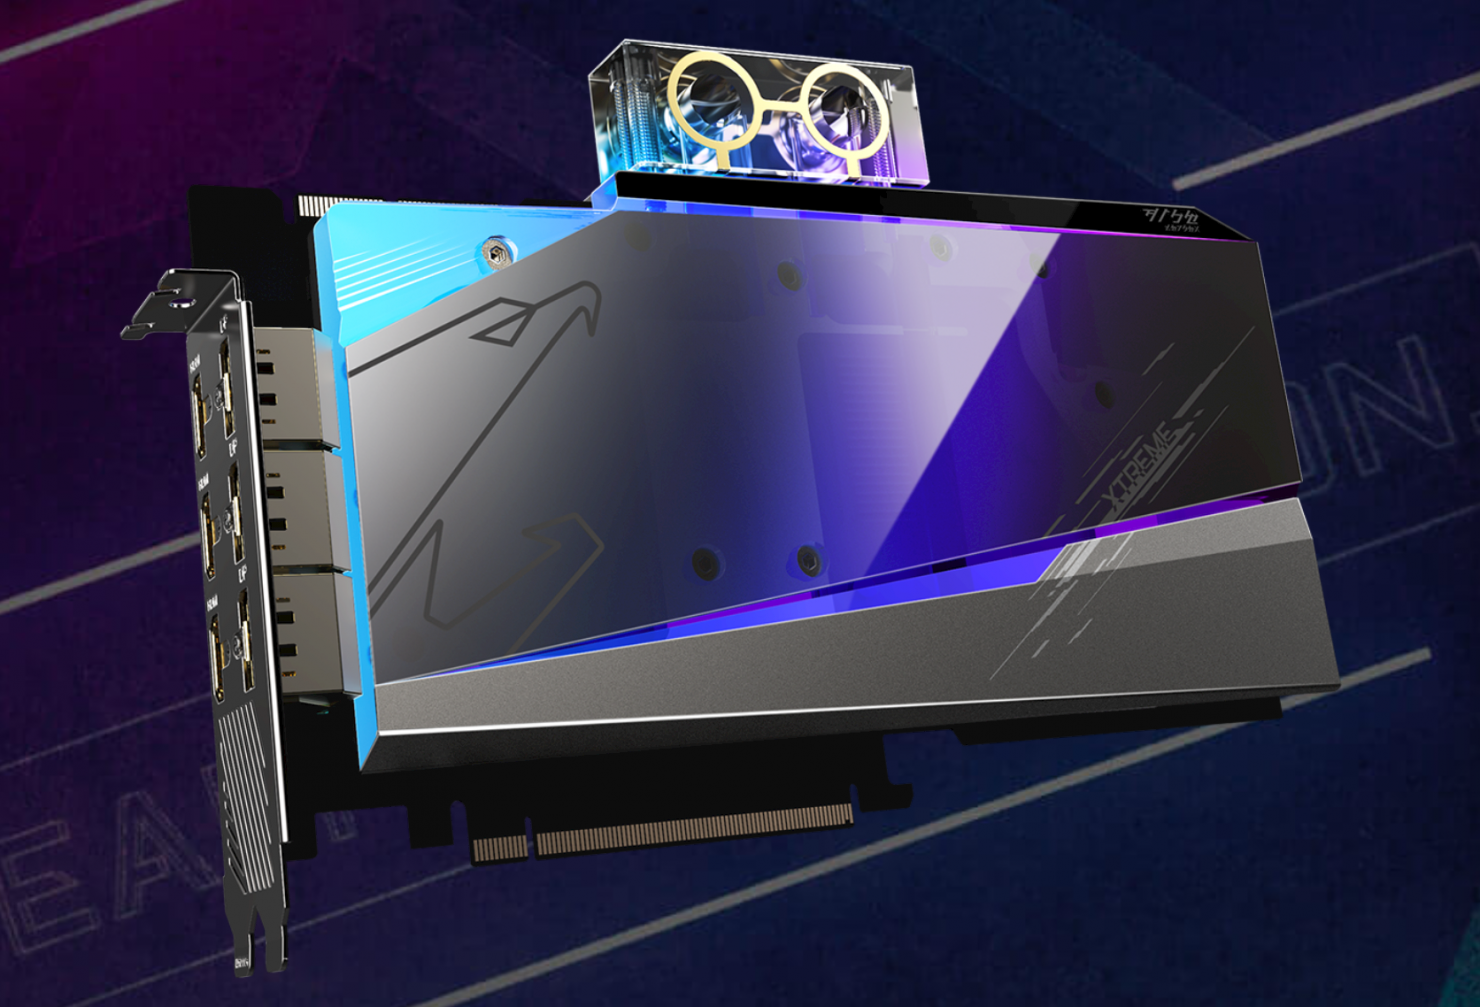 gigabyte-radeon-rx-6900-xt-aorus-xtreme-waterforce-wb-graphics-card-pictured,-enthusiast-gpu-with-premium-cooling